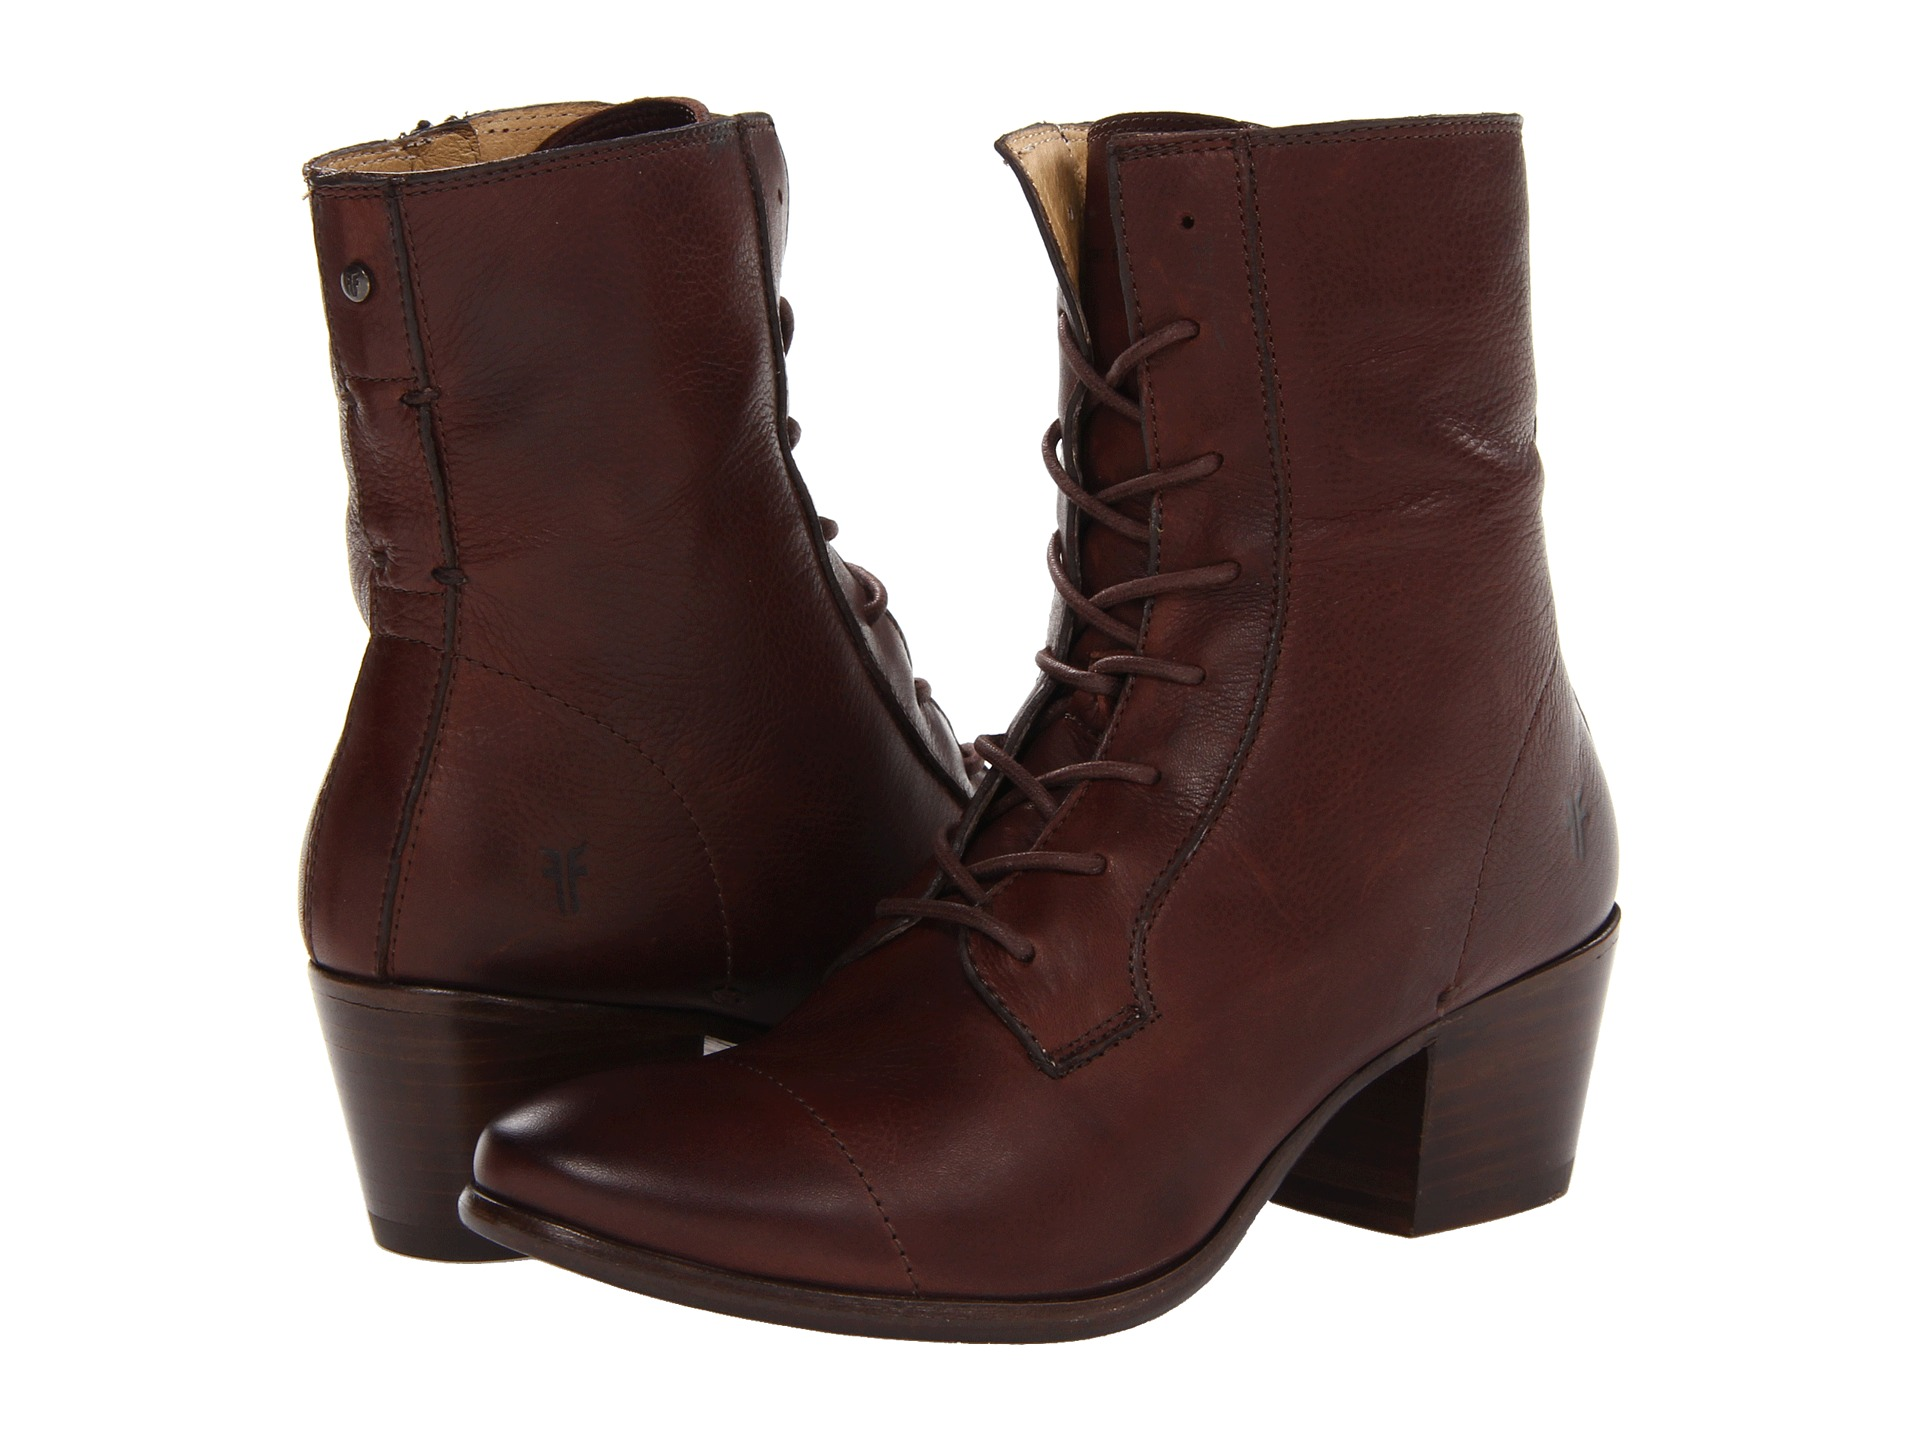 Innovative Fryedarkbrownfryewomenslaceupbootproduct12689208148152297